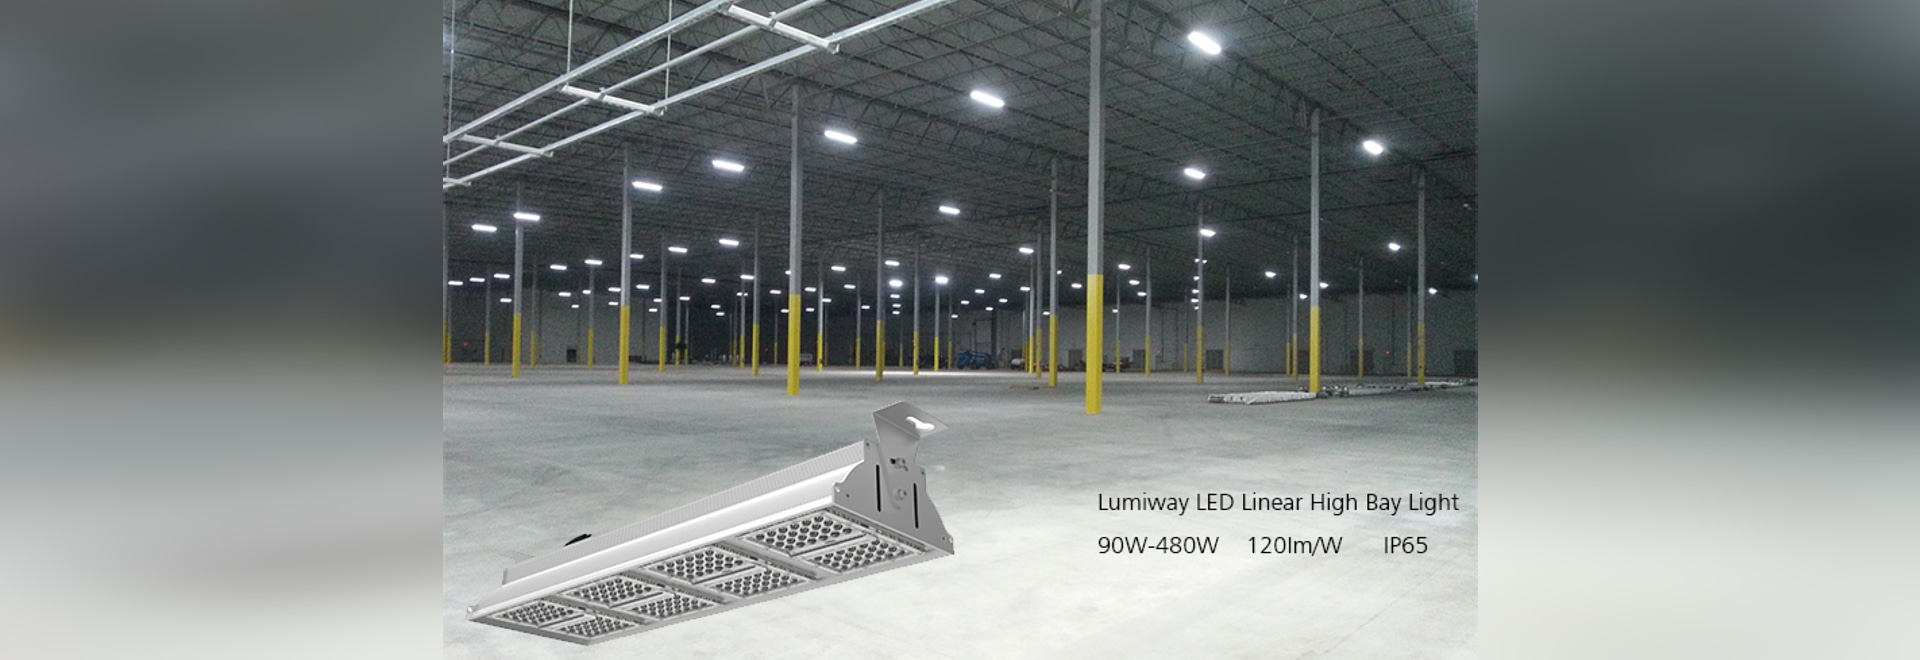 Led Linear High Bay Light In Warehouse In Usa Shenzhen Guangdong China Yaham Optoelectronics Co Ltd